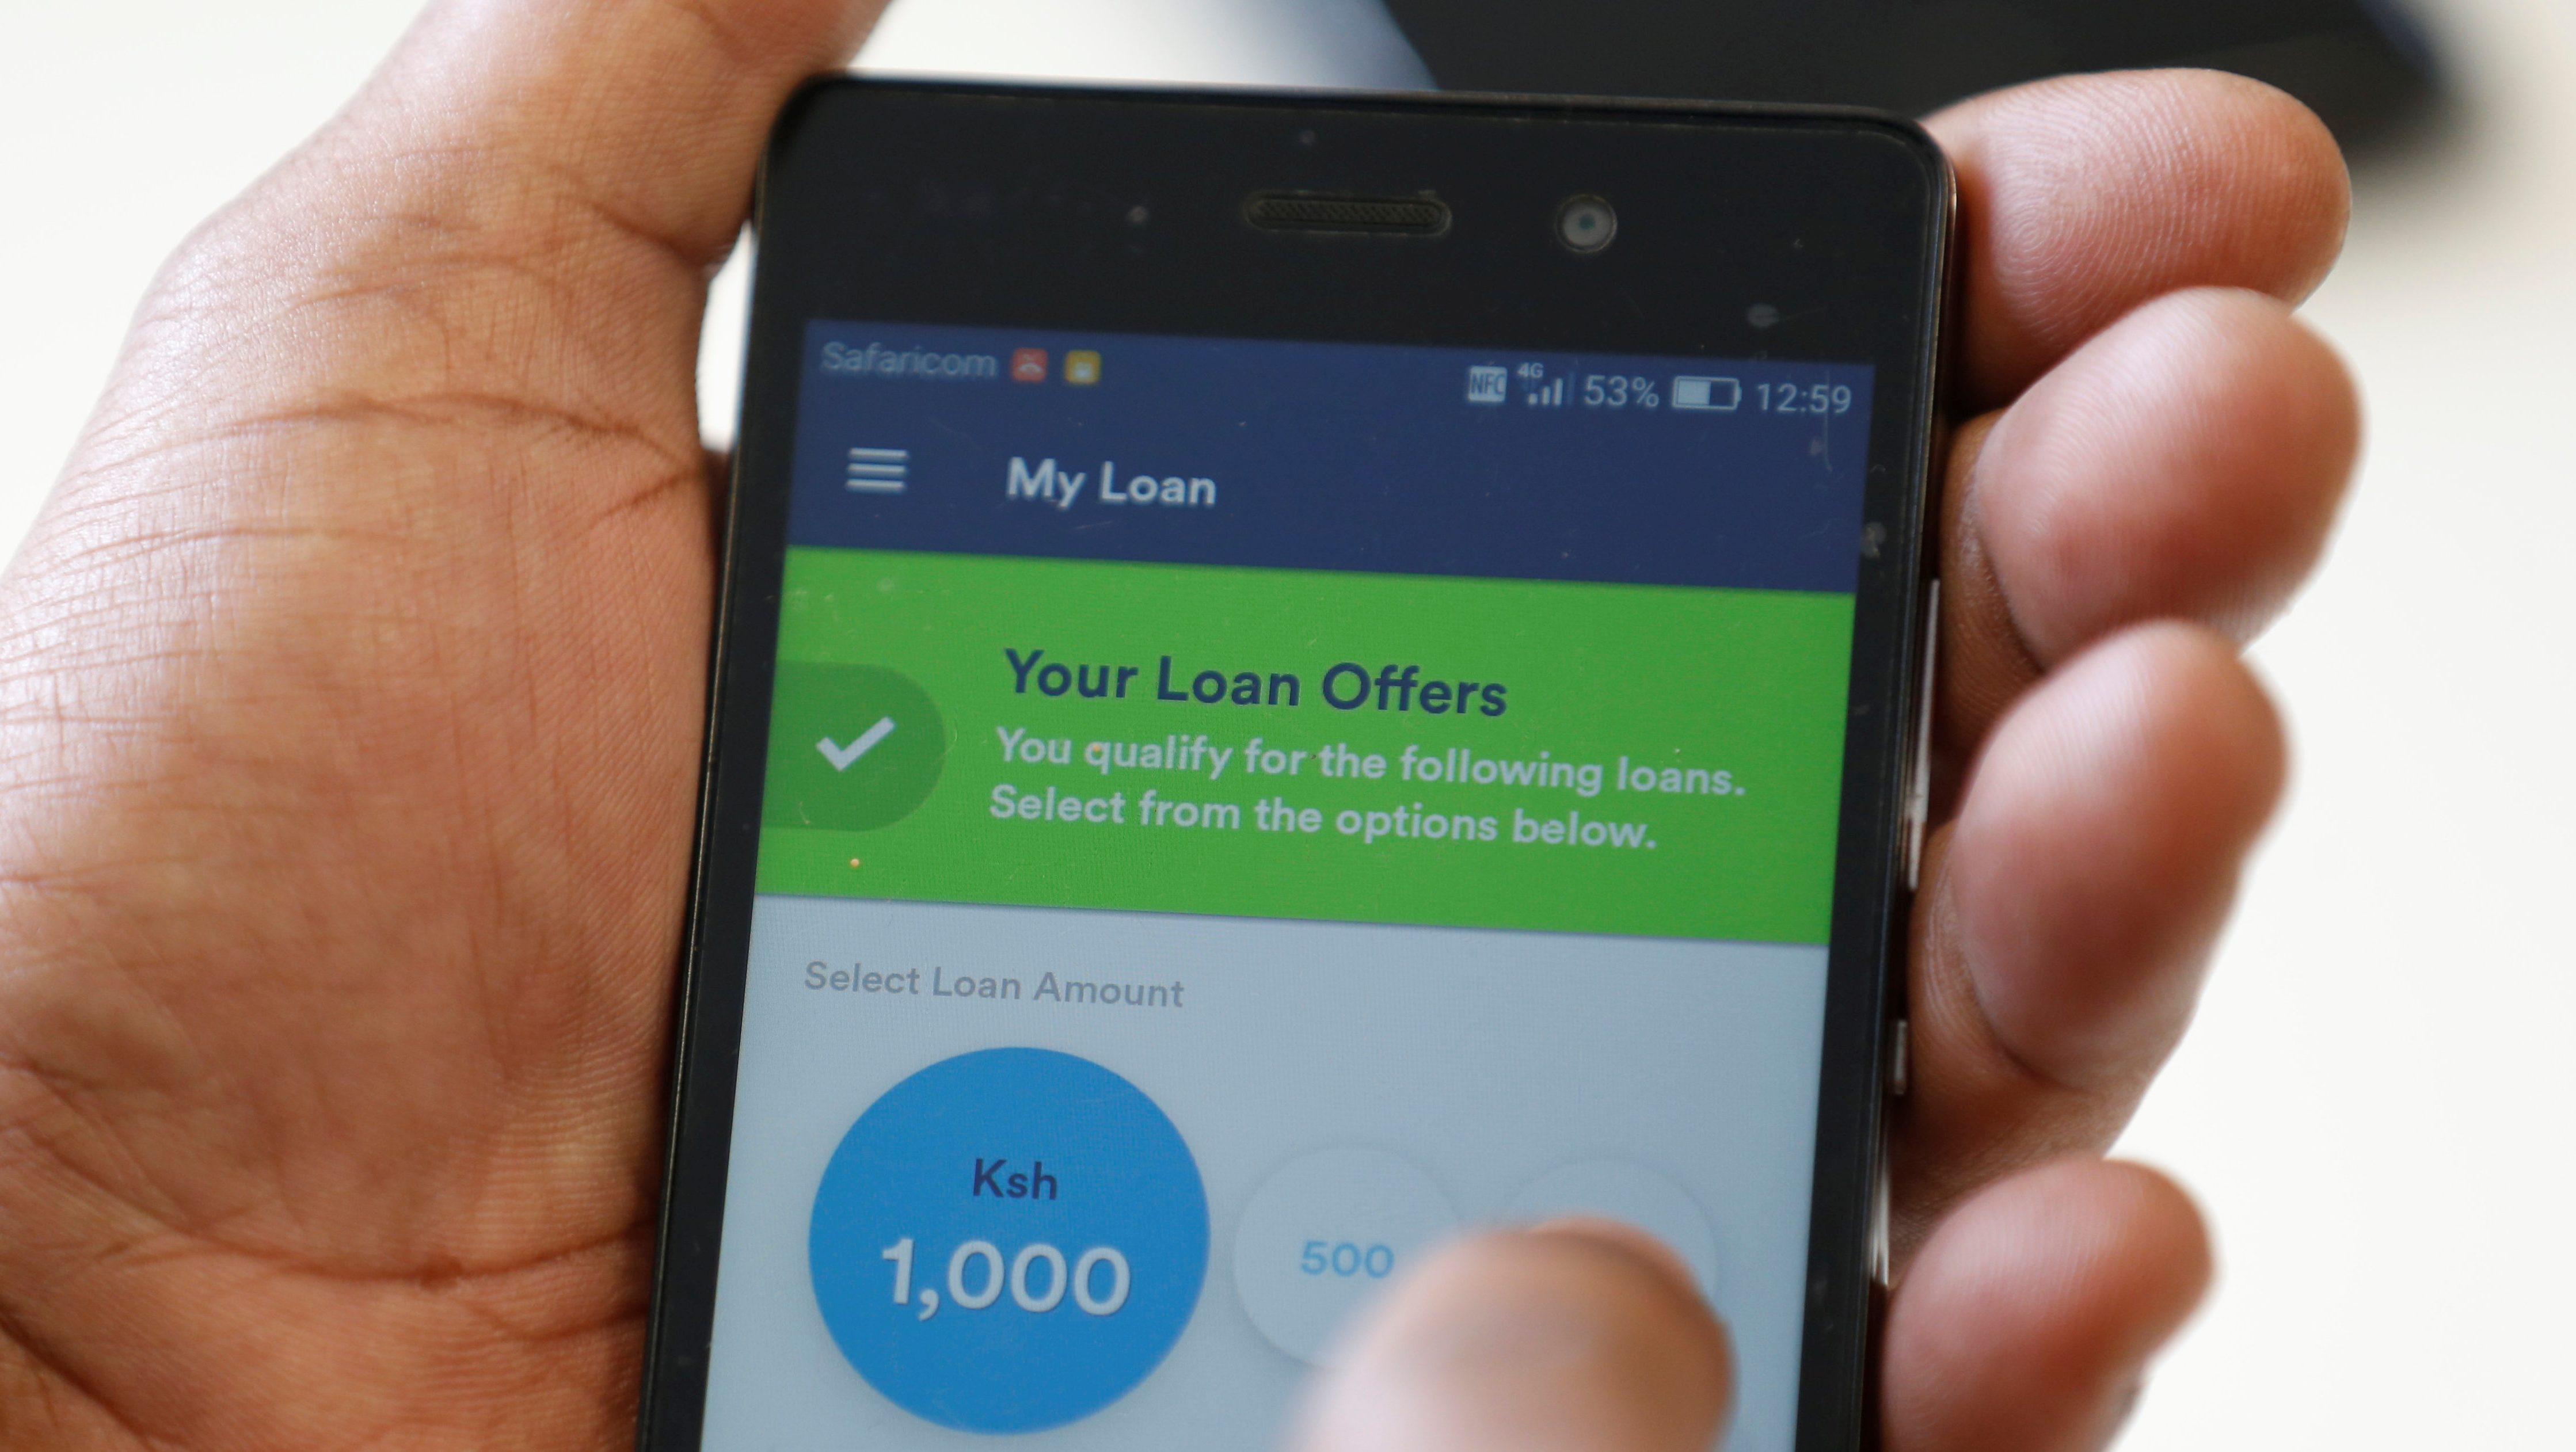 Mobile loans apps Tala, Branch, Okash face scrutiny in Kenya